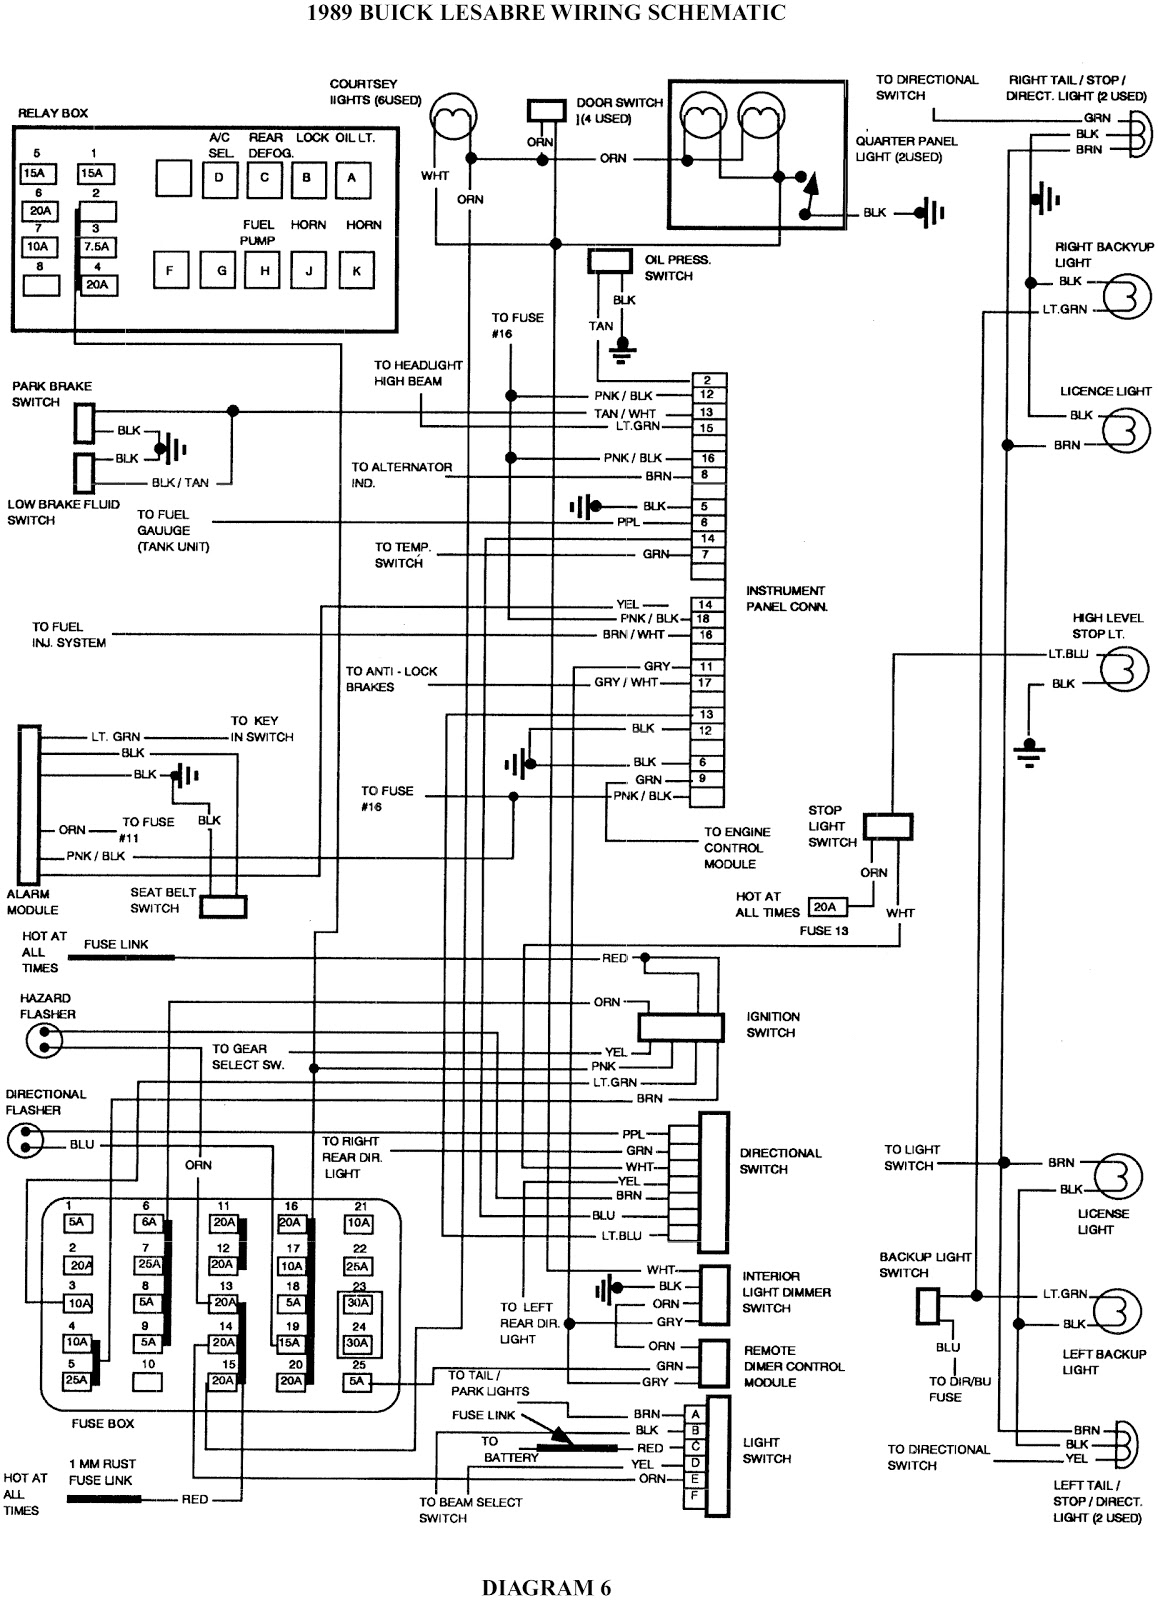 1989 Buick Lesabre Wiring Schematic on 1996 Ford Explorer Fuse Box Diagram